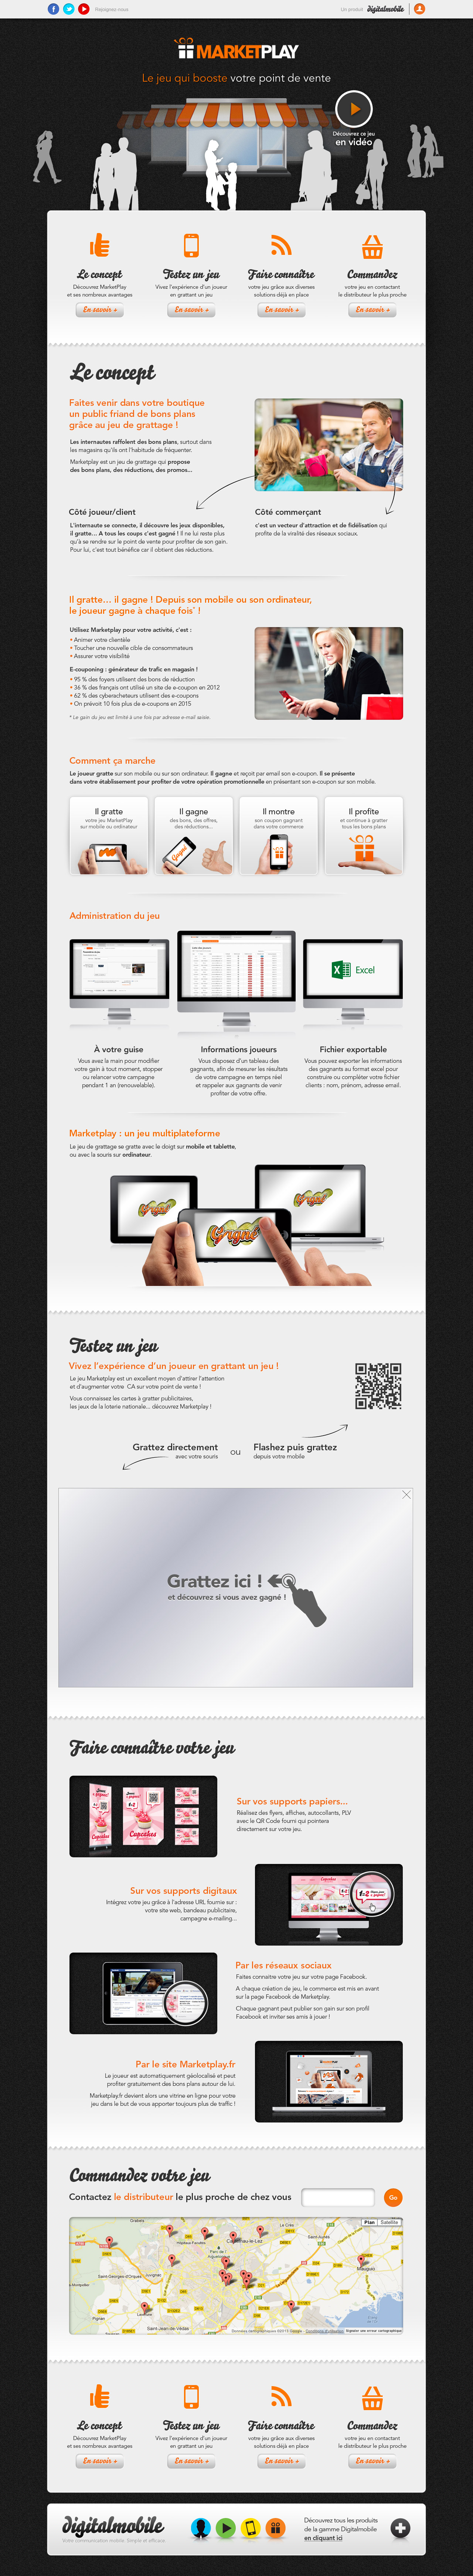 marketplay-site-internet-pro-creation-communication-caconcept-alexis-cretin-graphiste